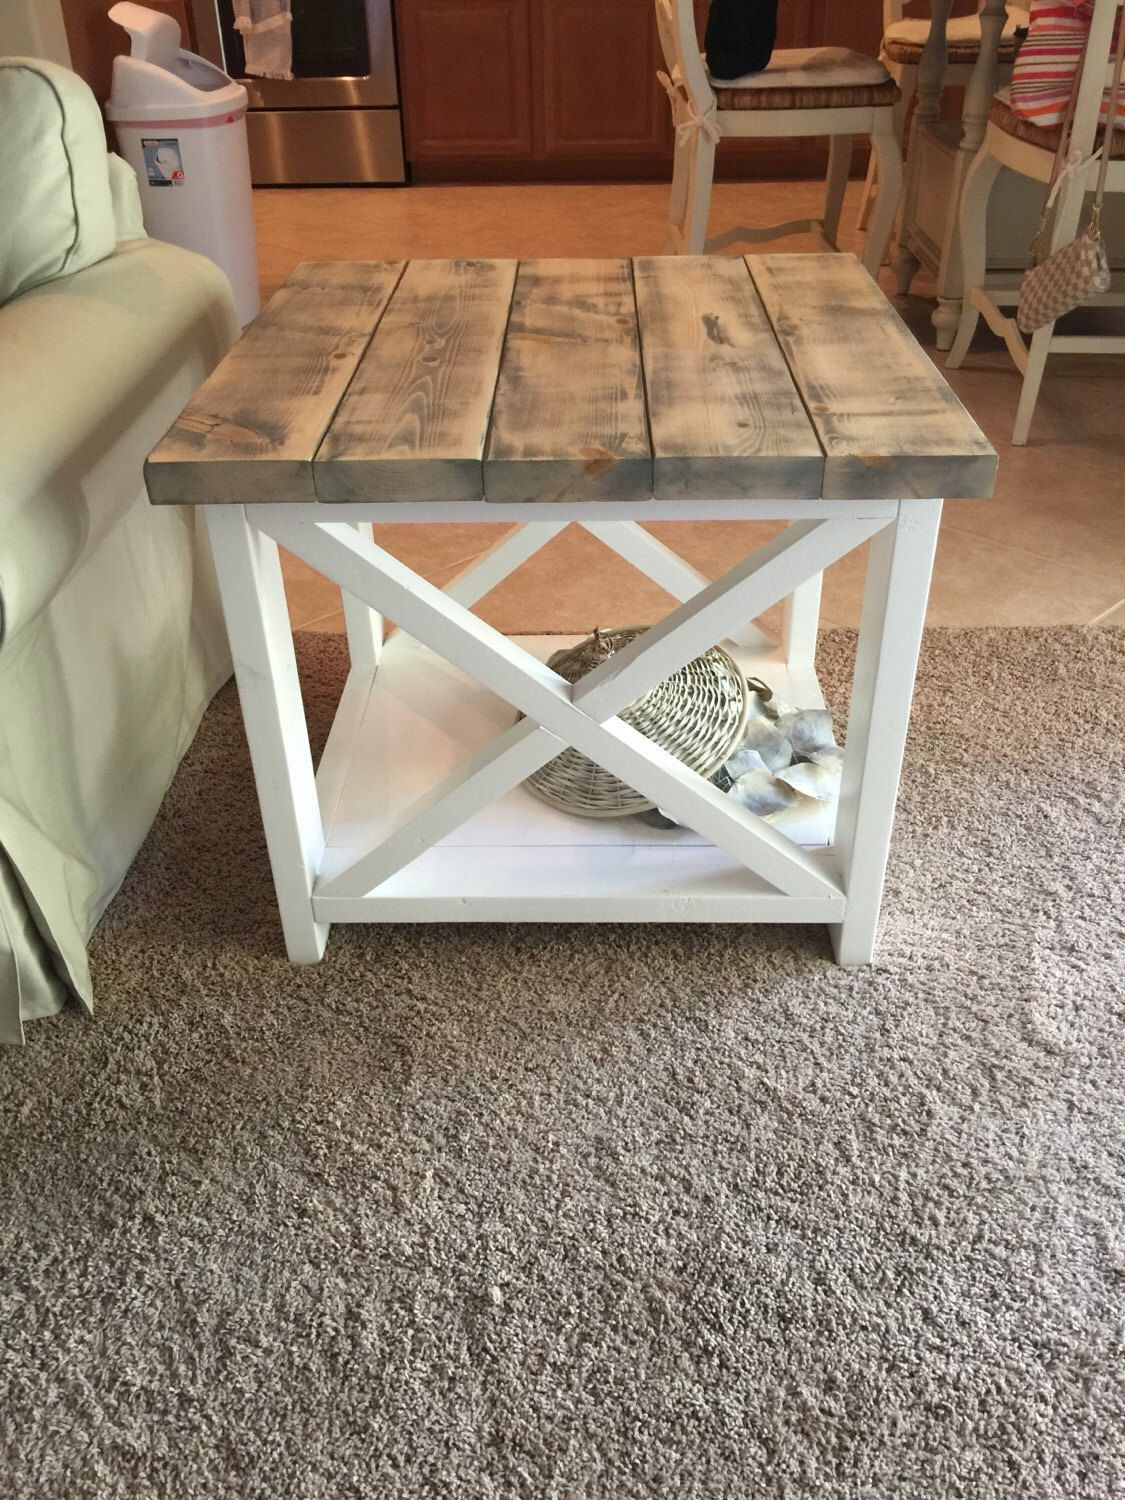 pin sarah wazdatskey places think yes farmhouse white end table best design ideas give aesthetic room tables barn wood outdoor glass and chairs pewter coffee family rooms with